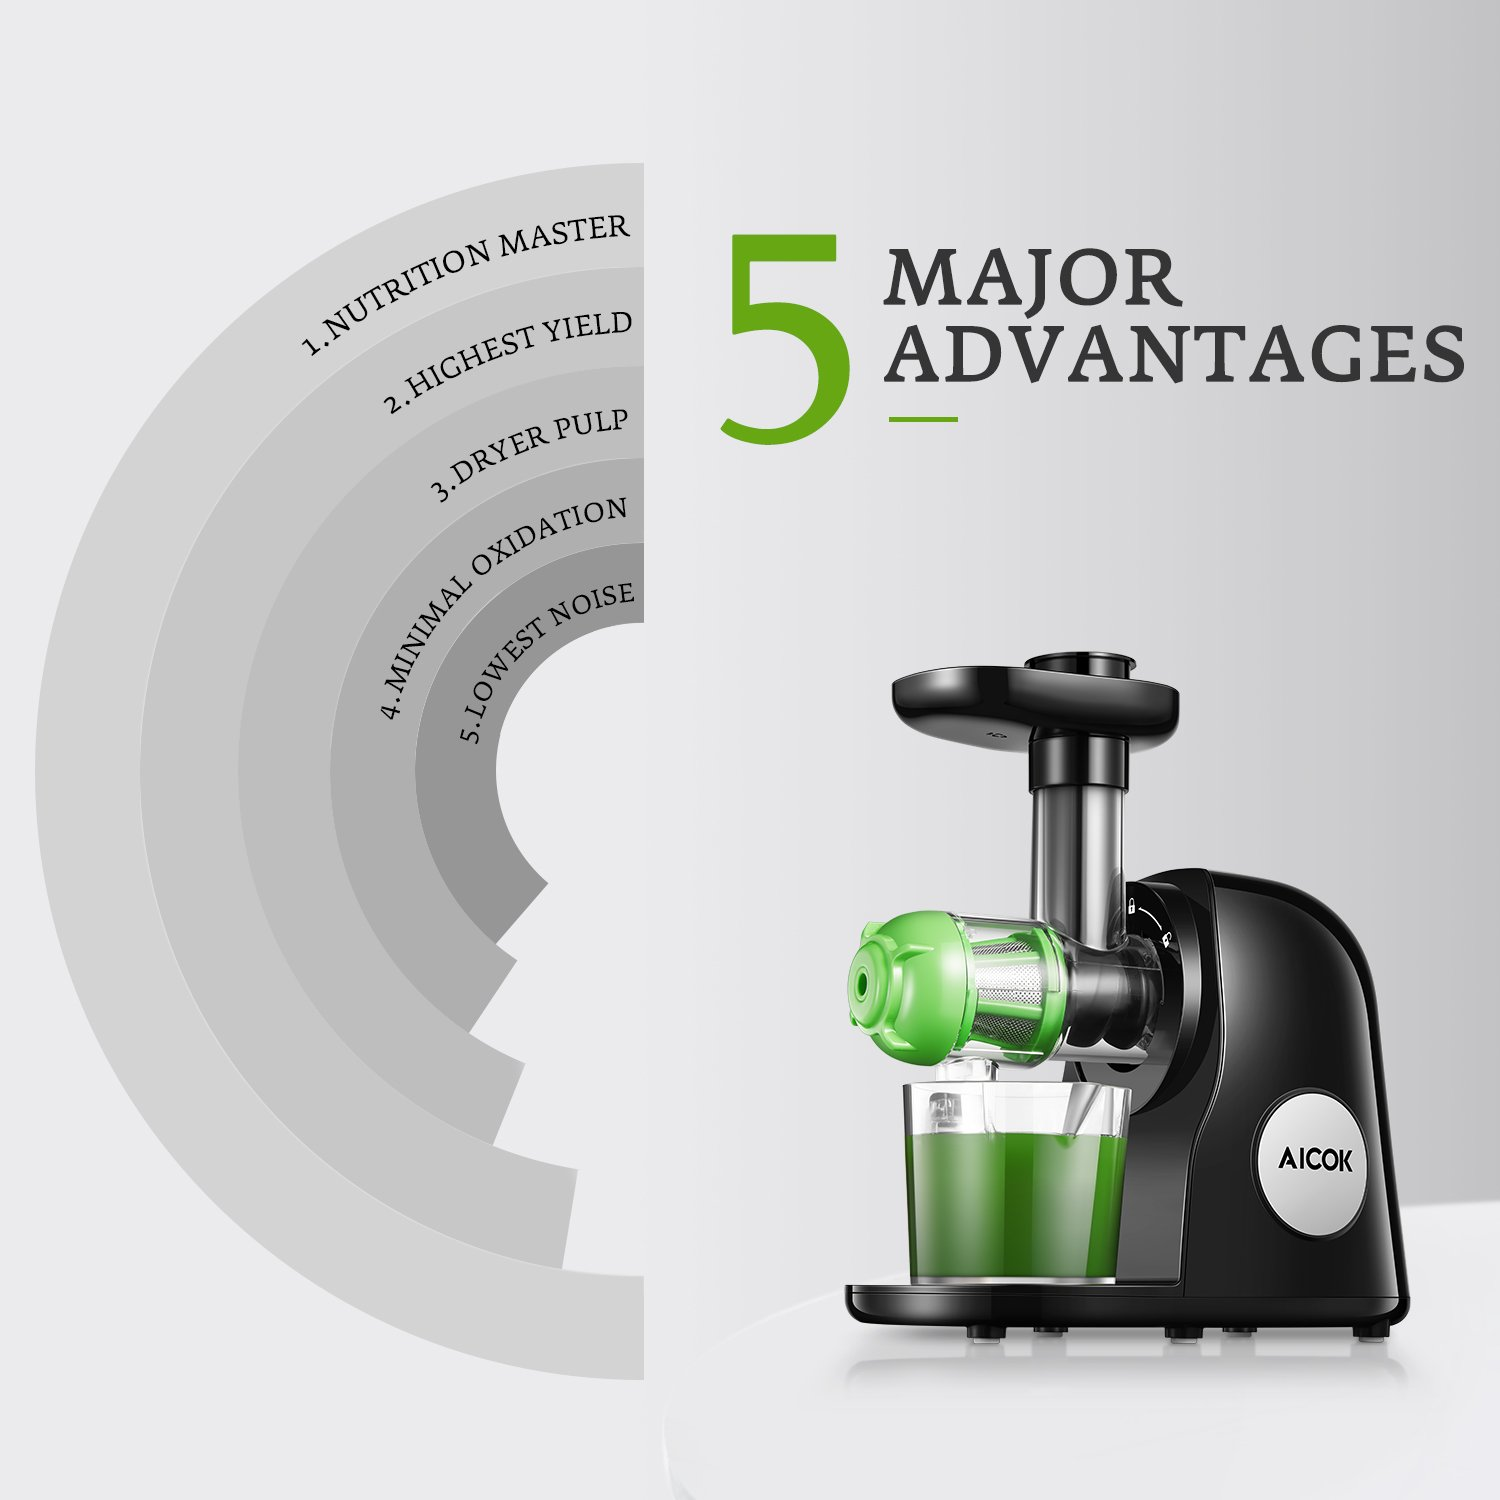 Juicer Masticating Slow Juicer Extractor, Aicok Juice Quiet Motor & Reverse Function, BPA Free, Cold Press Juicer Easy to Clean with Brush, Juice Machine Recipes for Vegetables and Fruits by AICOK (Image #2)